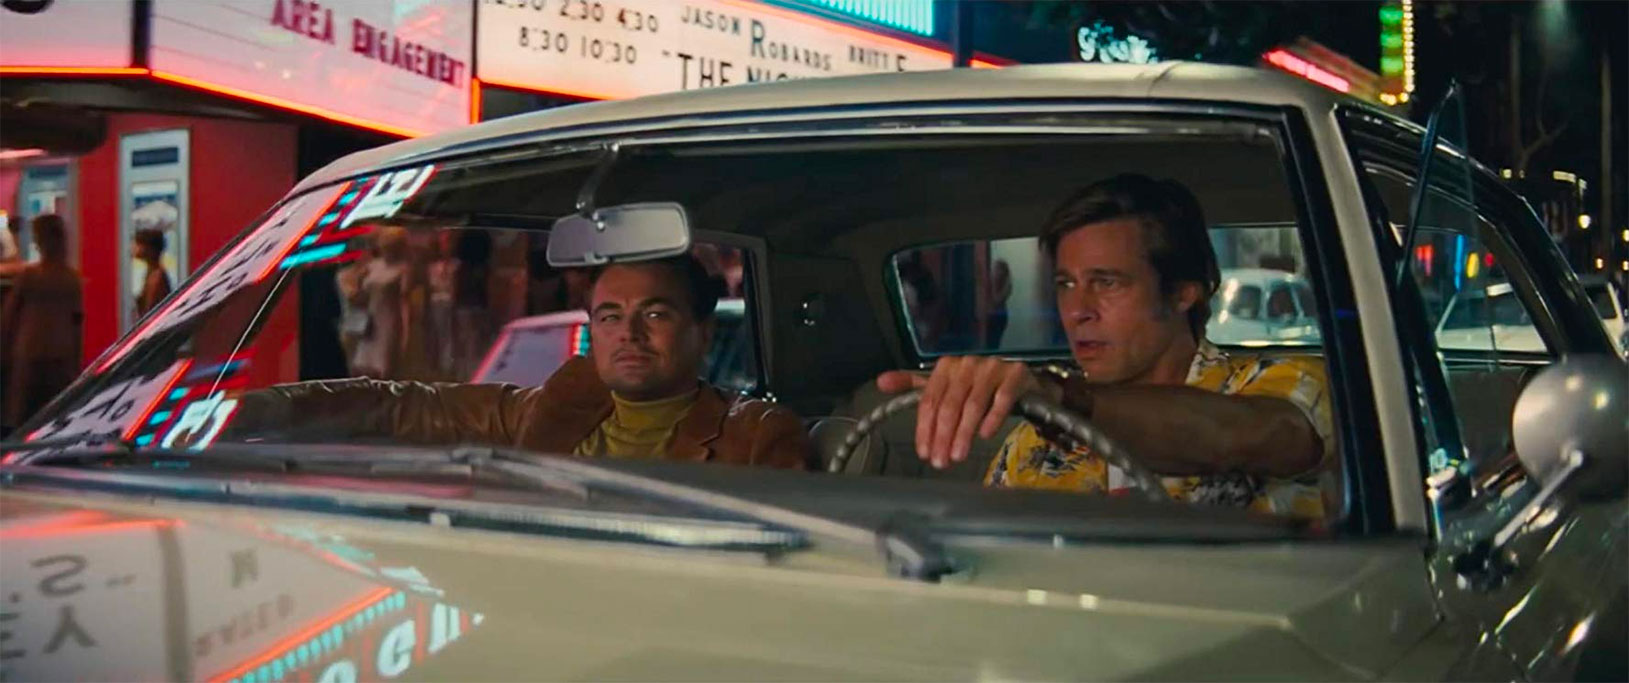 Leonardo DiCaprio, Brad Pitt dans Once upon a time… In Hollywood